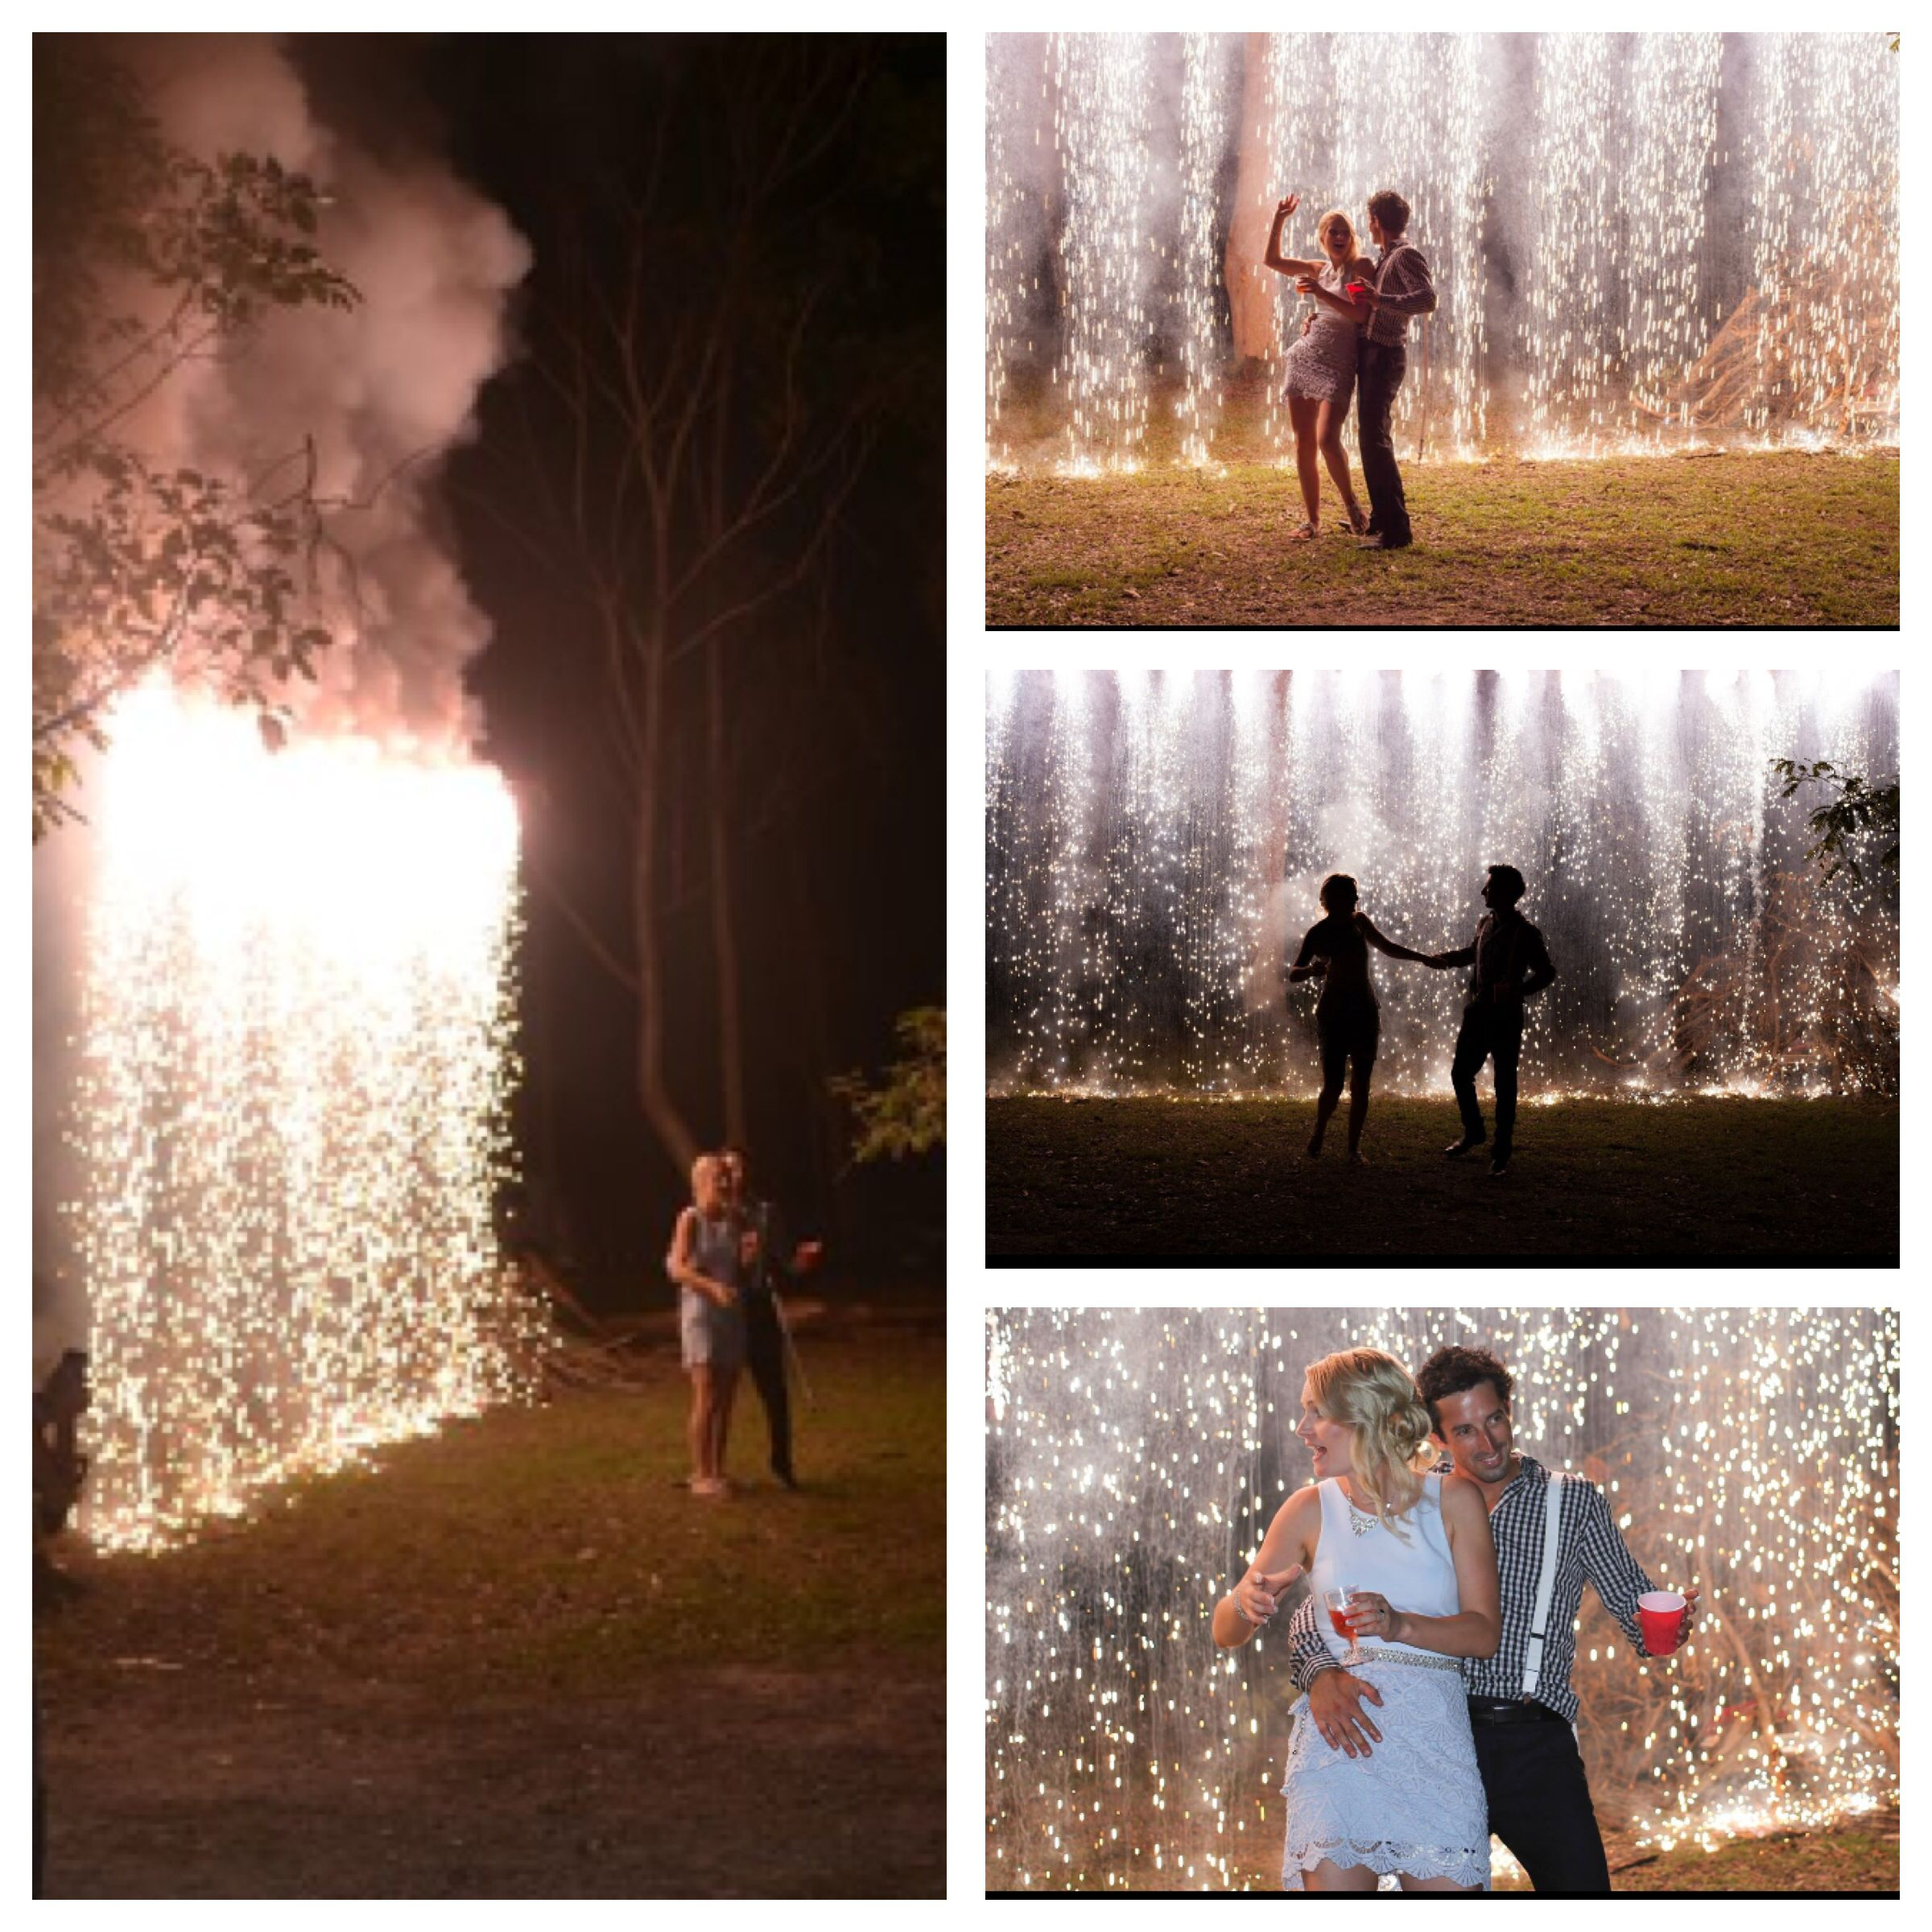 the firework waterfall creates a stunning backdrop for wedding